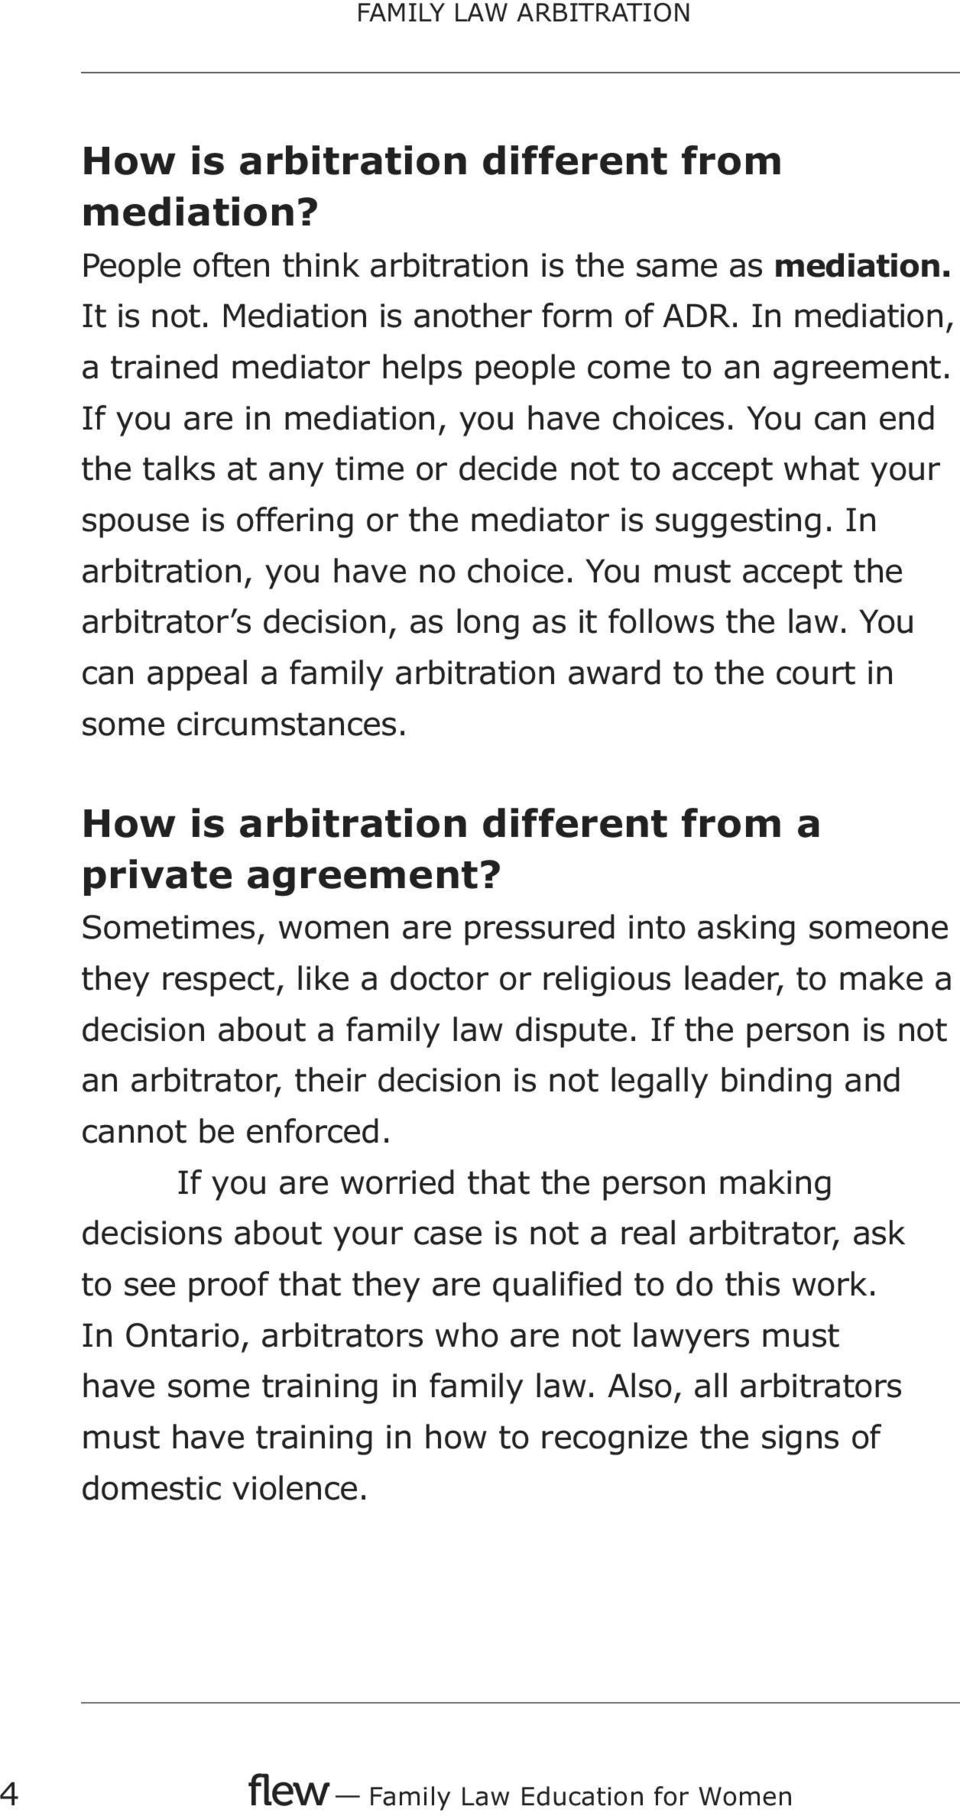 You can end the talks at any time or decide not to accept what your spouse is offering or the mediator is suggesting. In arbitration, you have no choice.